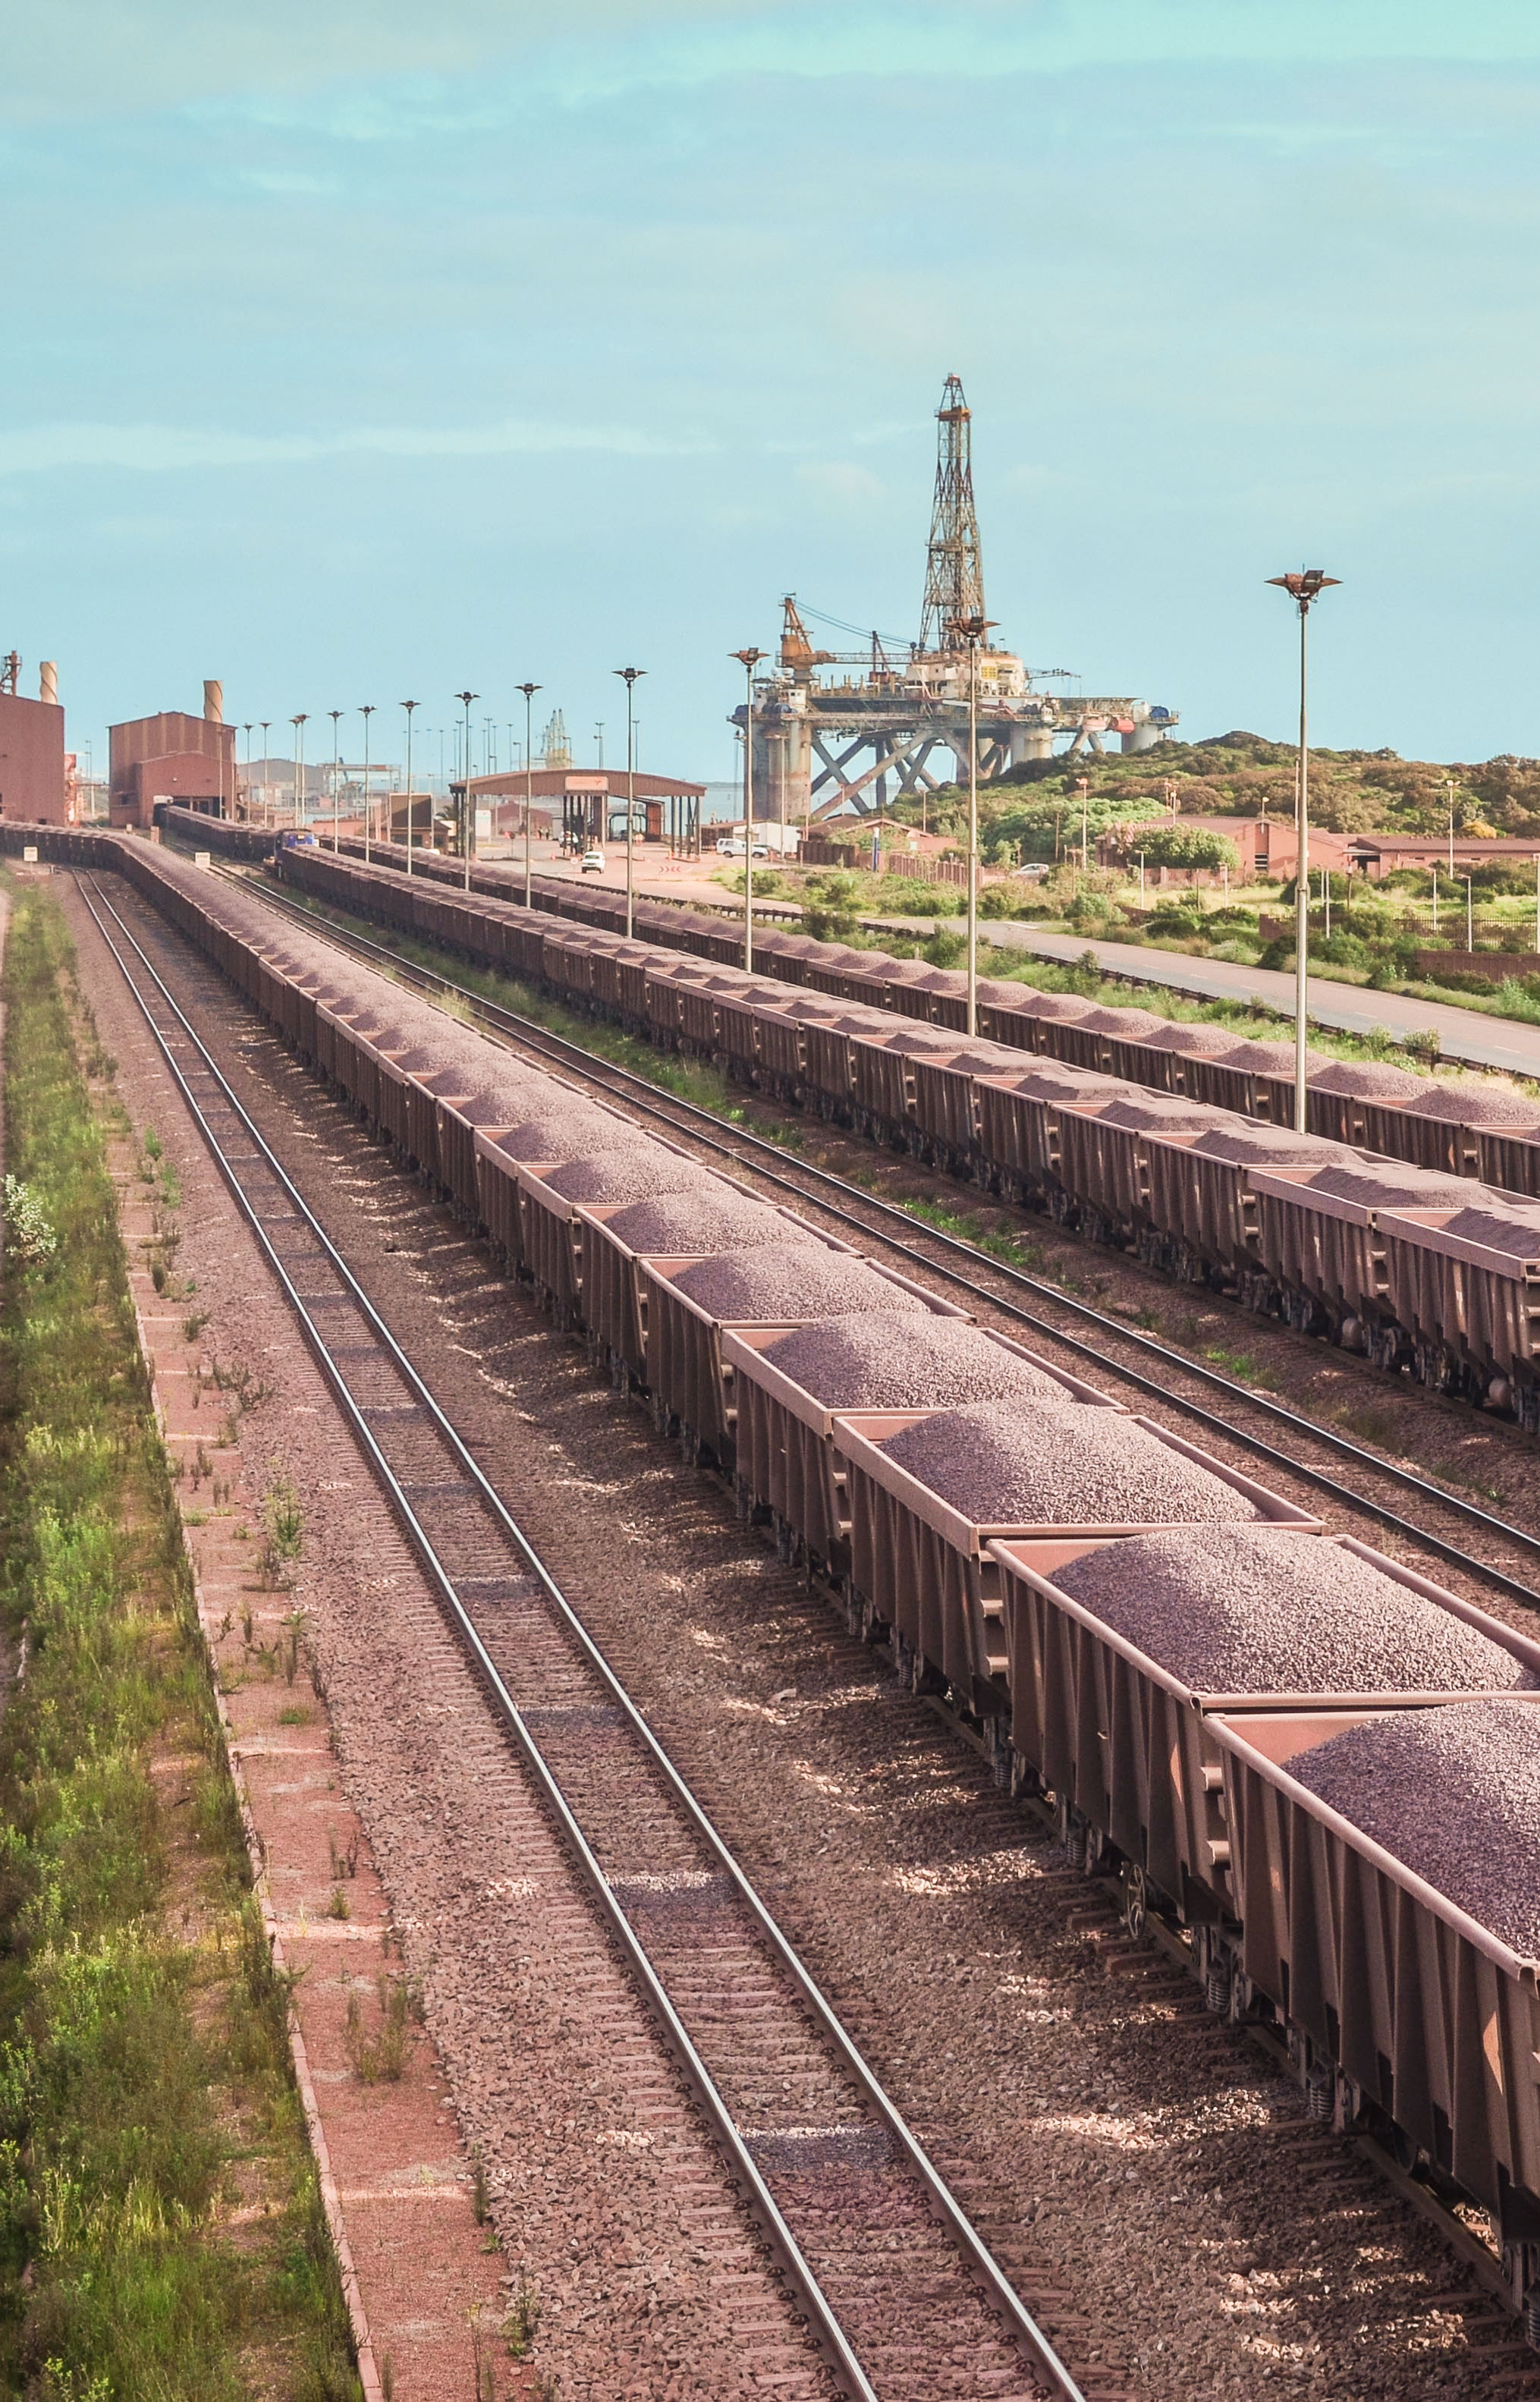 Iron ore loaded trains, Saldanha terminal, South Africa. © jbdodane